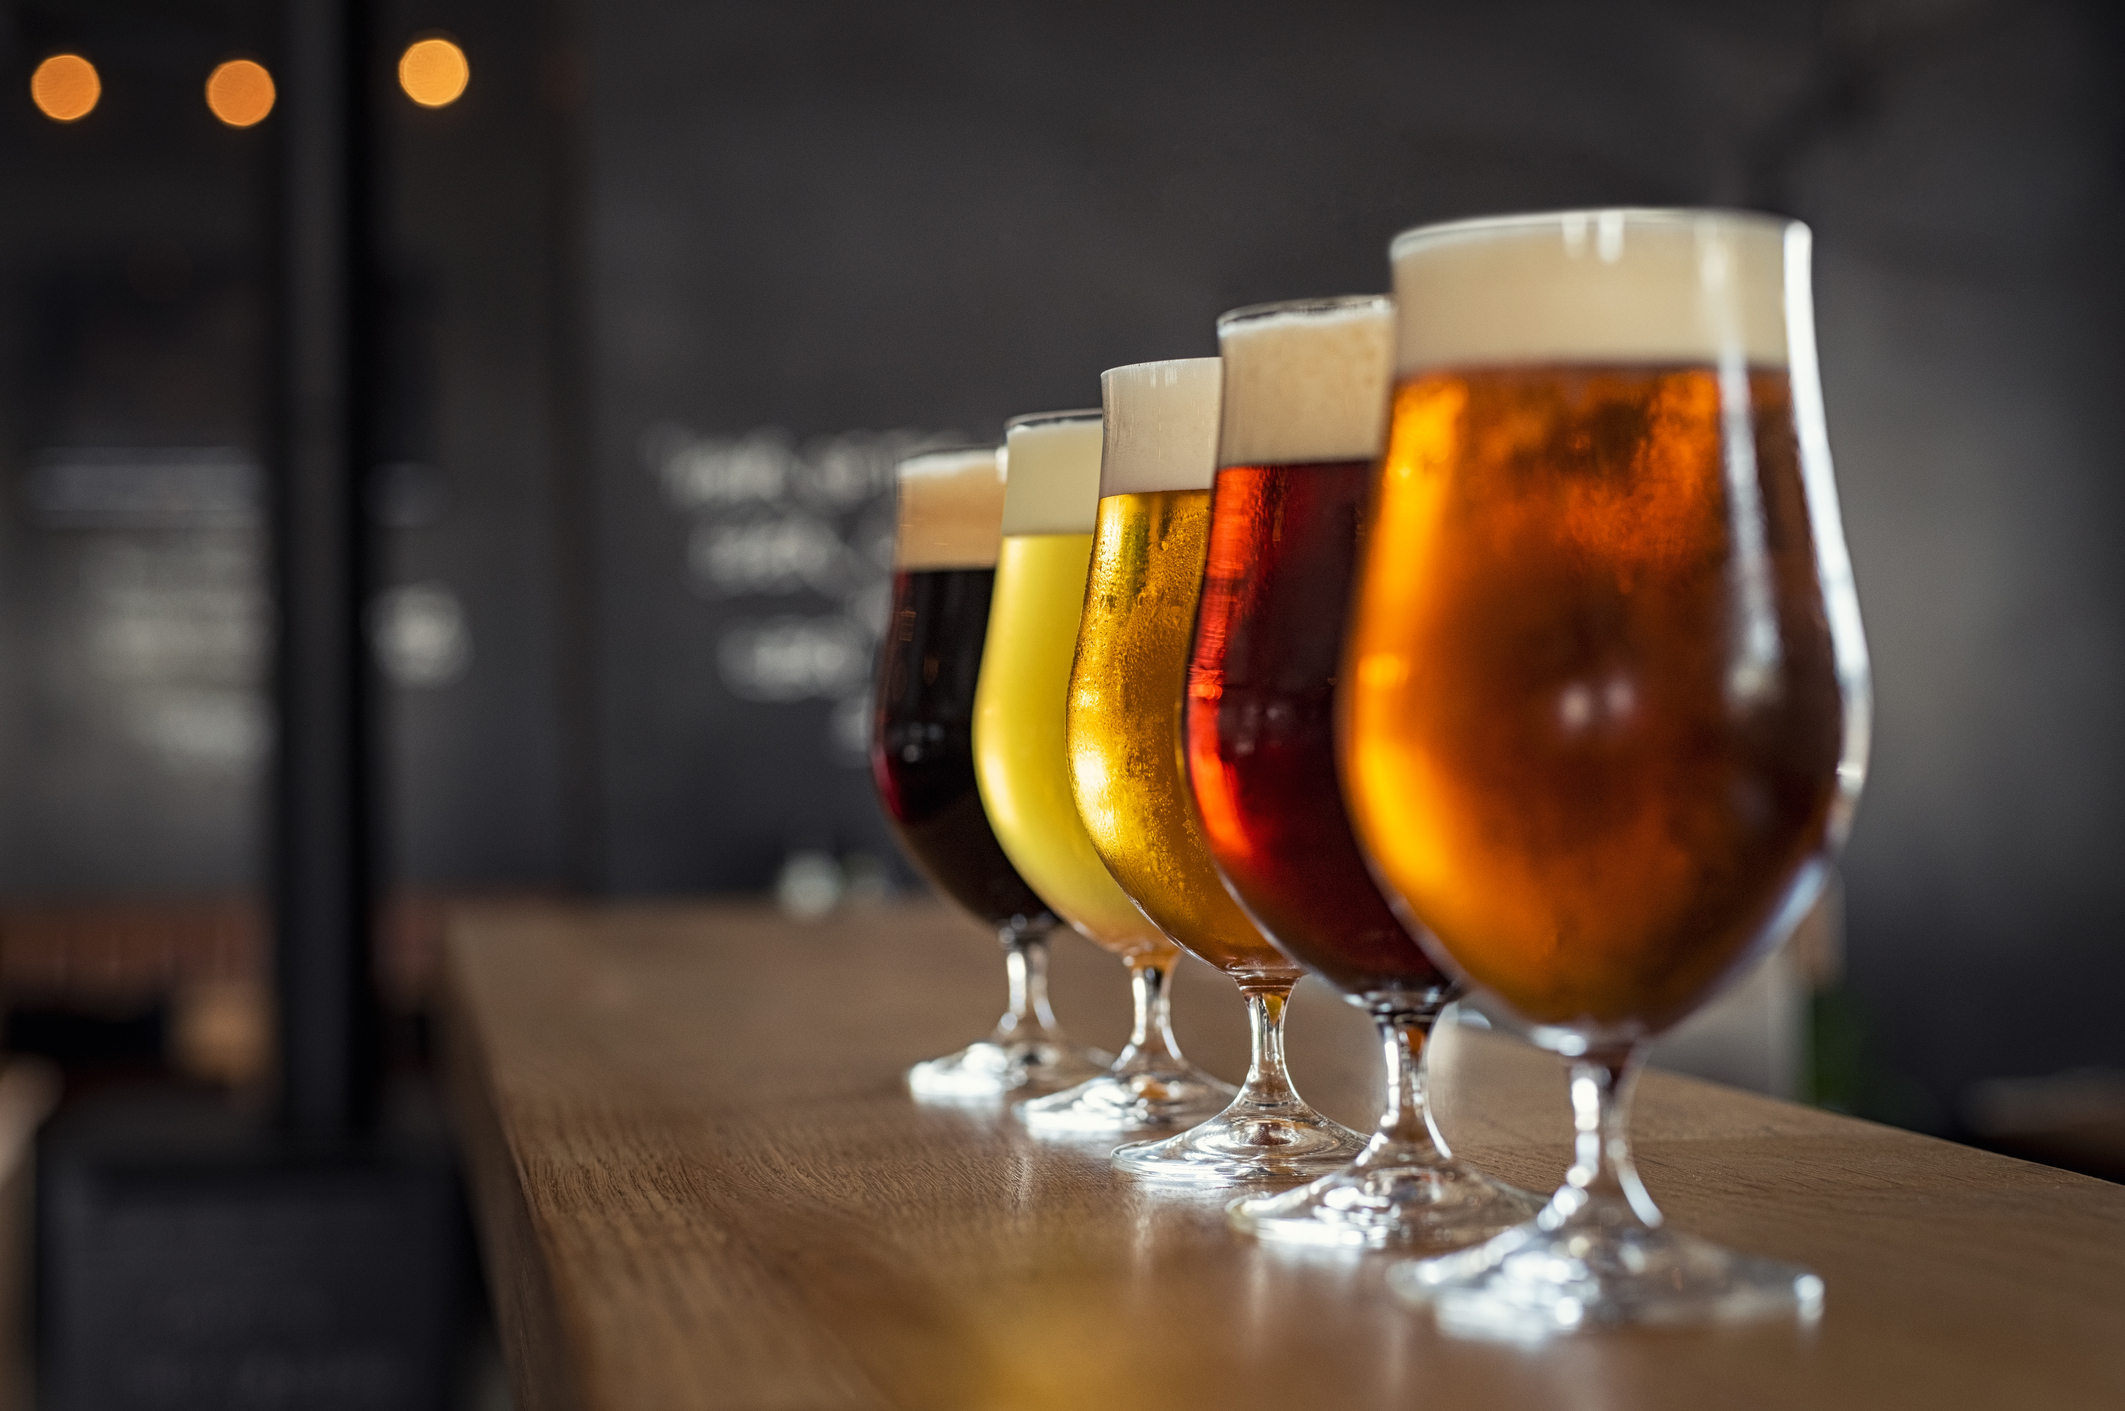 10 of the world's lowest calorie beers 2020